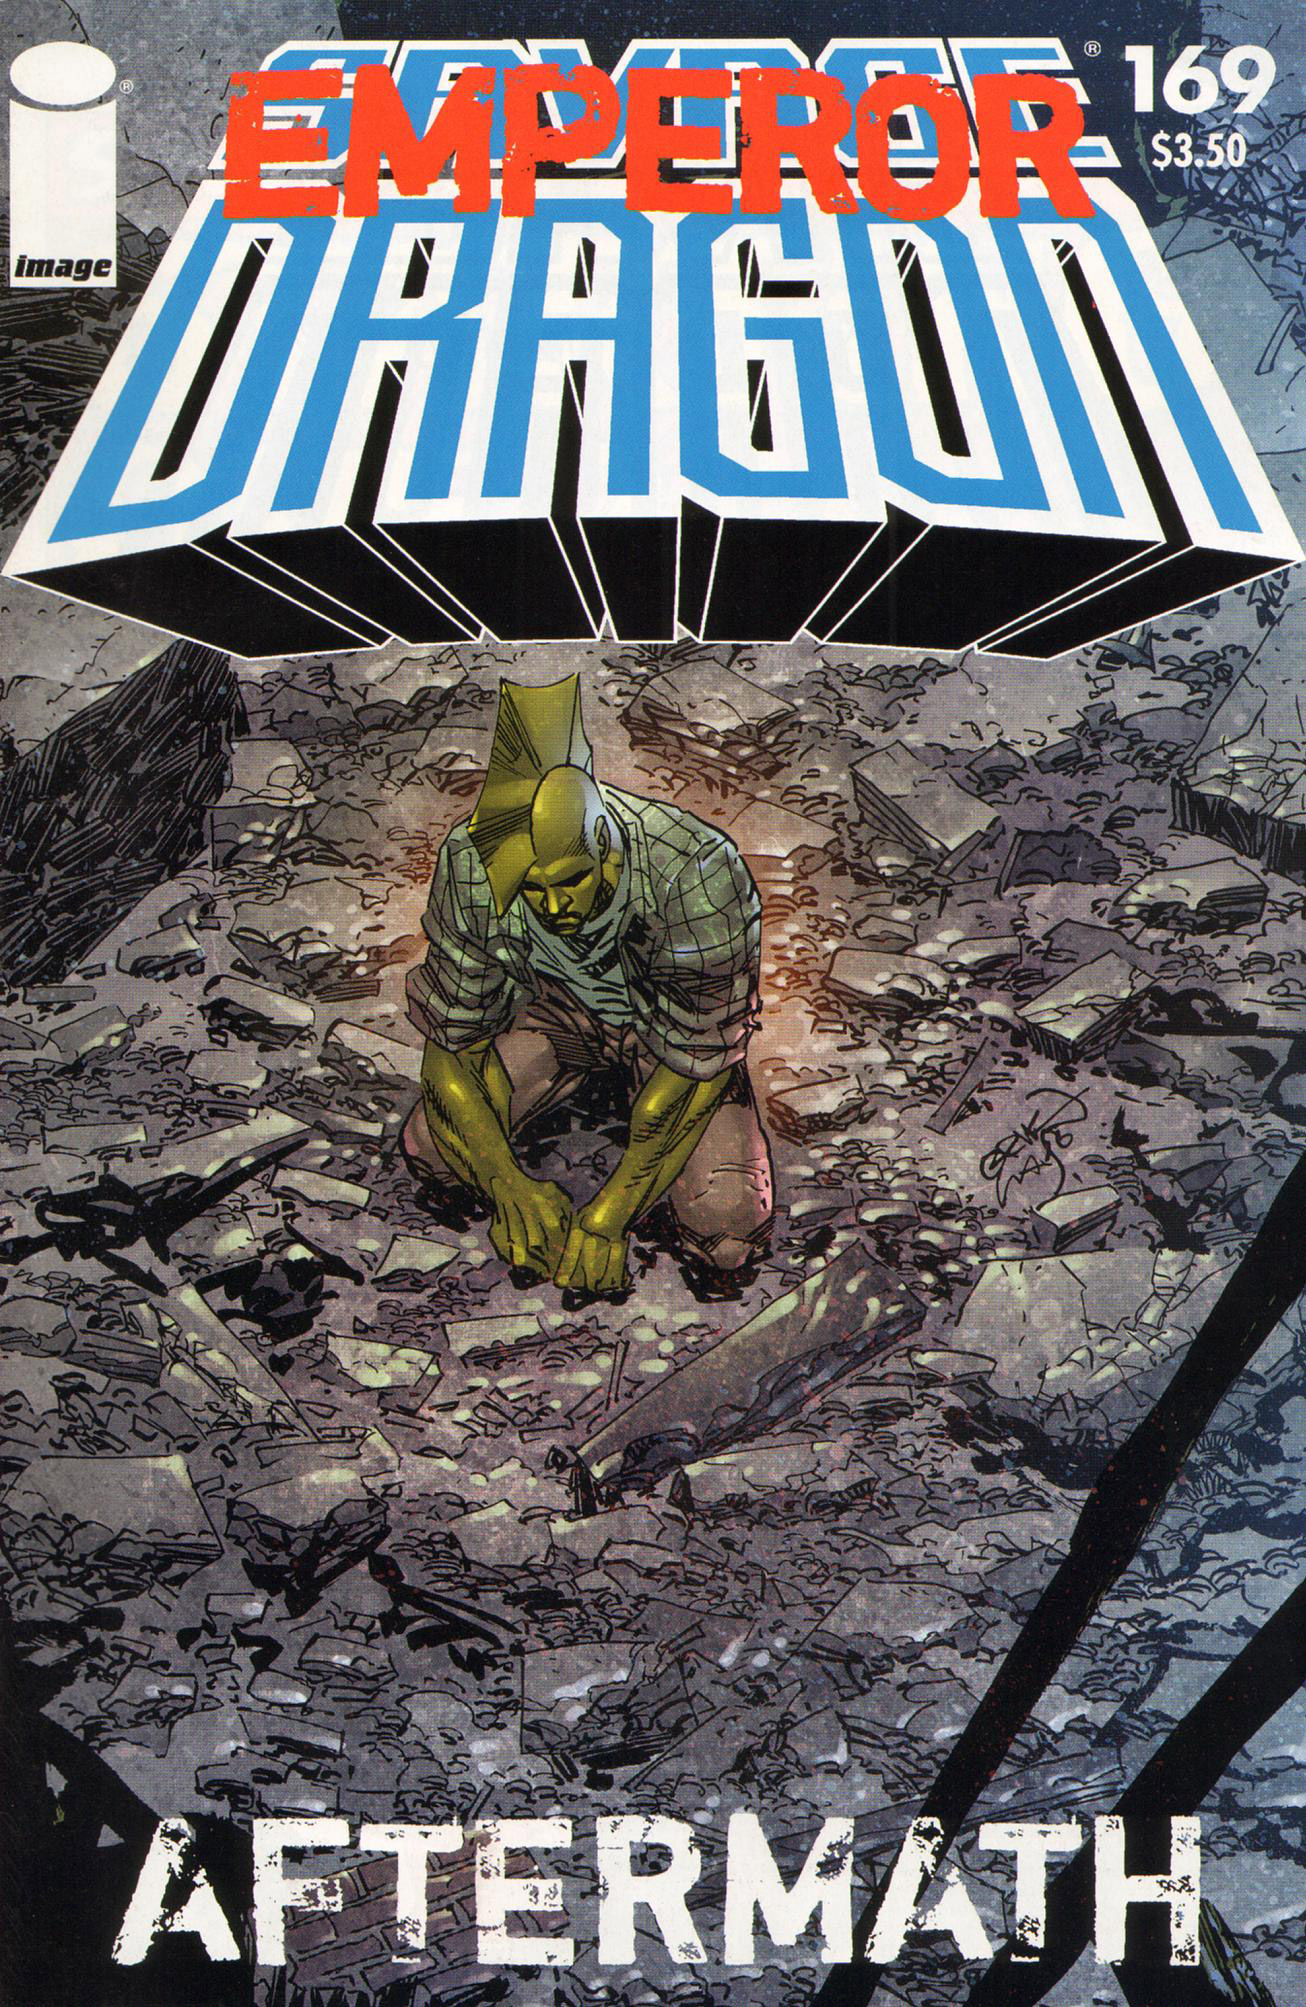 Cover Savage Dragon Vol.2 #169